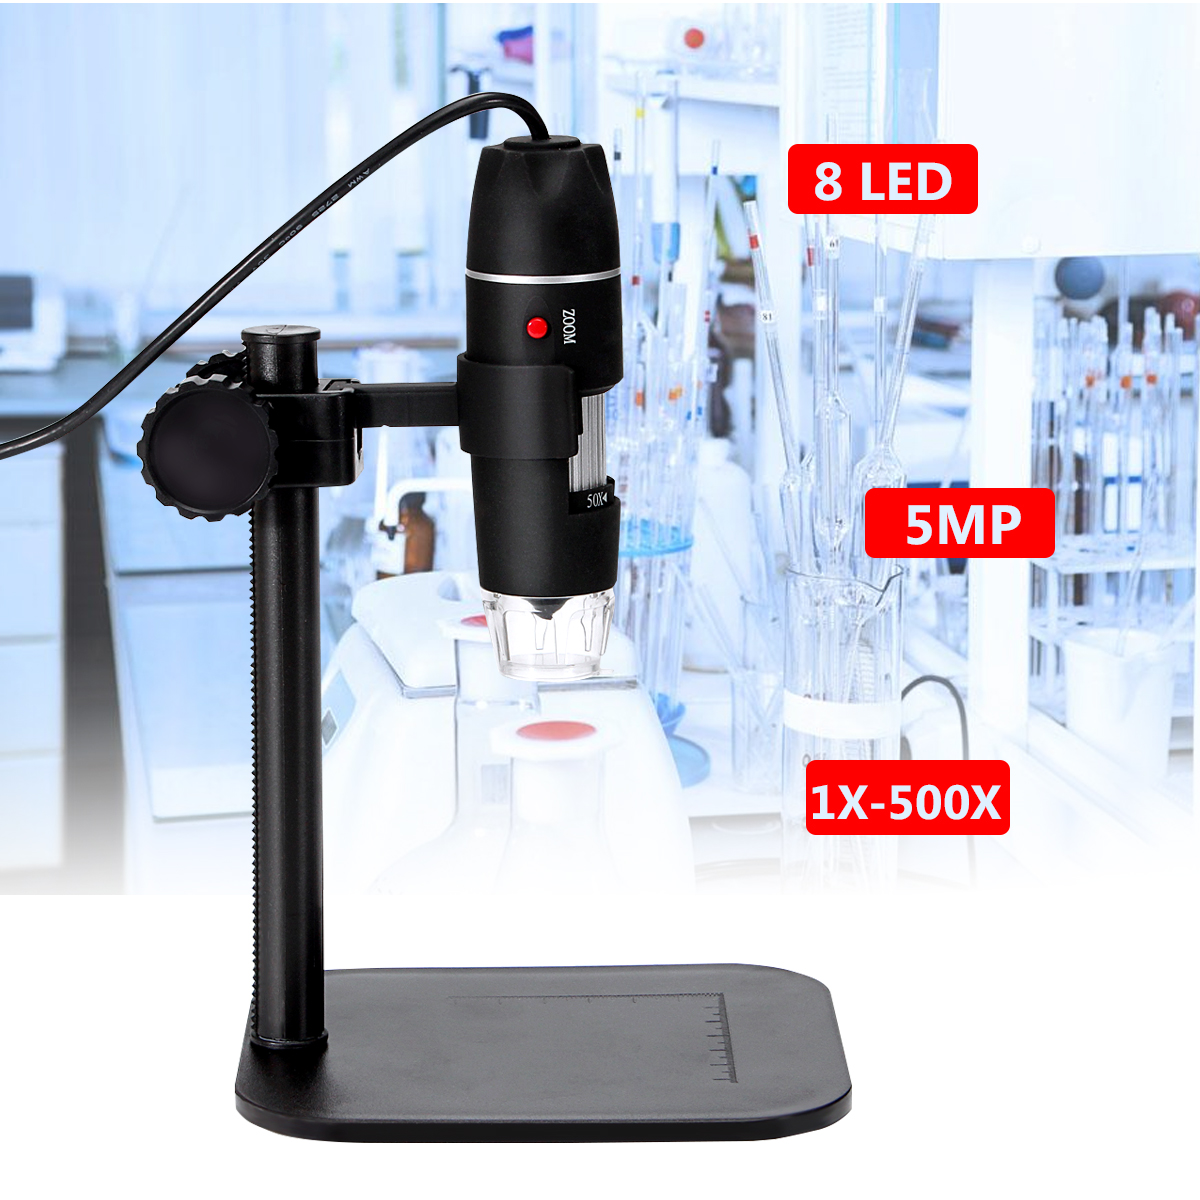 5MP 8 LED USB Digital Camera Microscope Magnifier with Black Stand 1X-500X 5V DC by